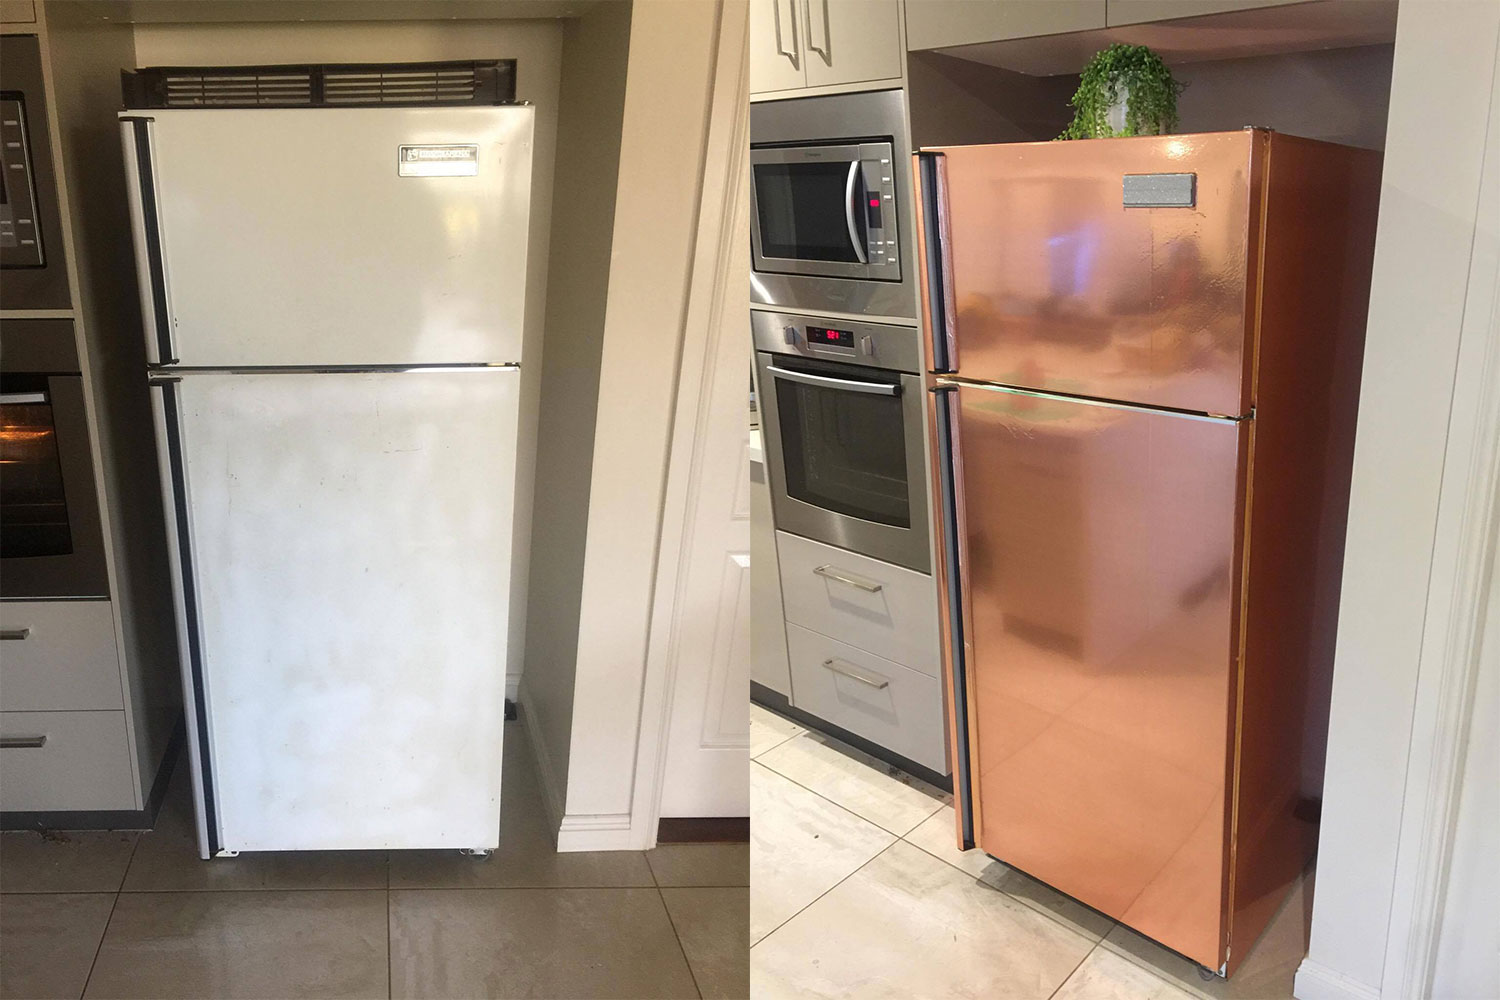 kmart kitchen faucet with handspray the 5 hack that transformed this fridge better homes and gardens